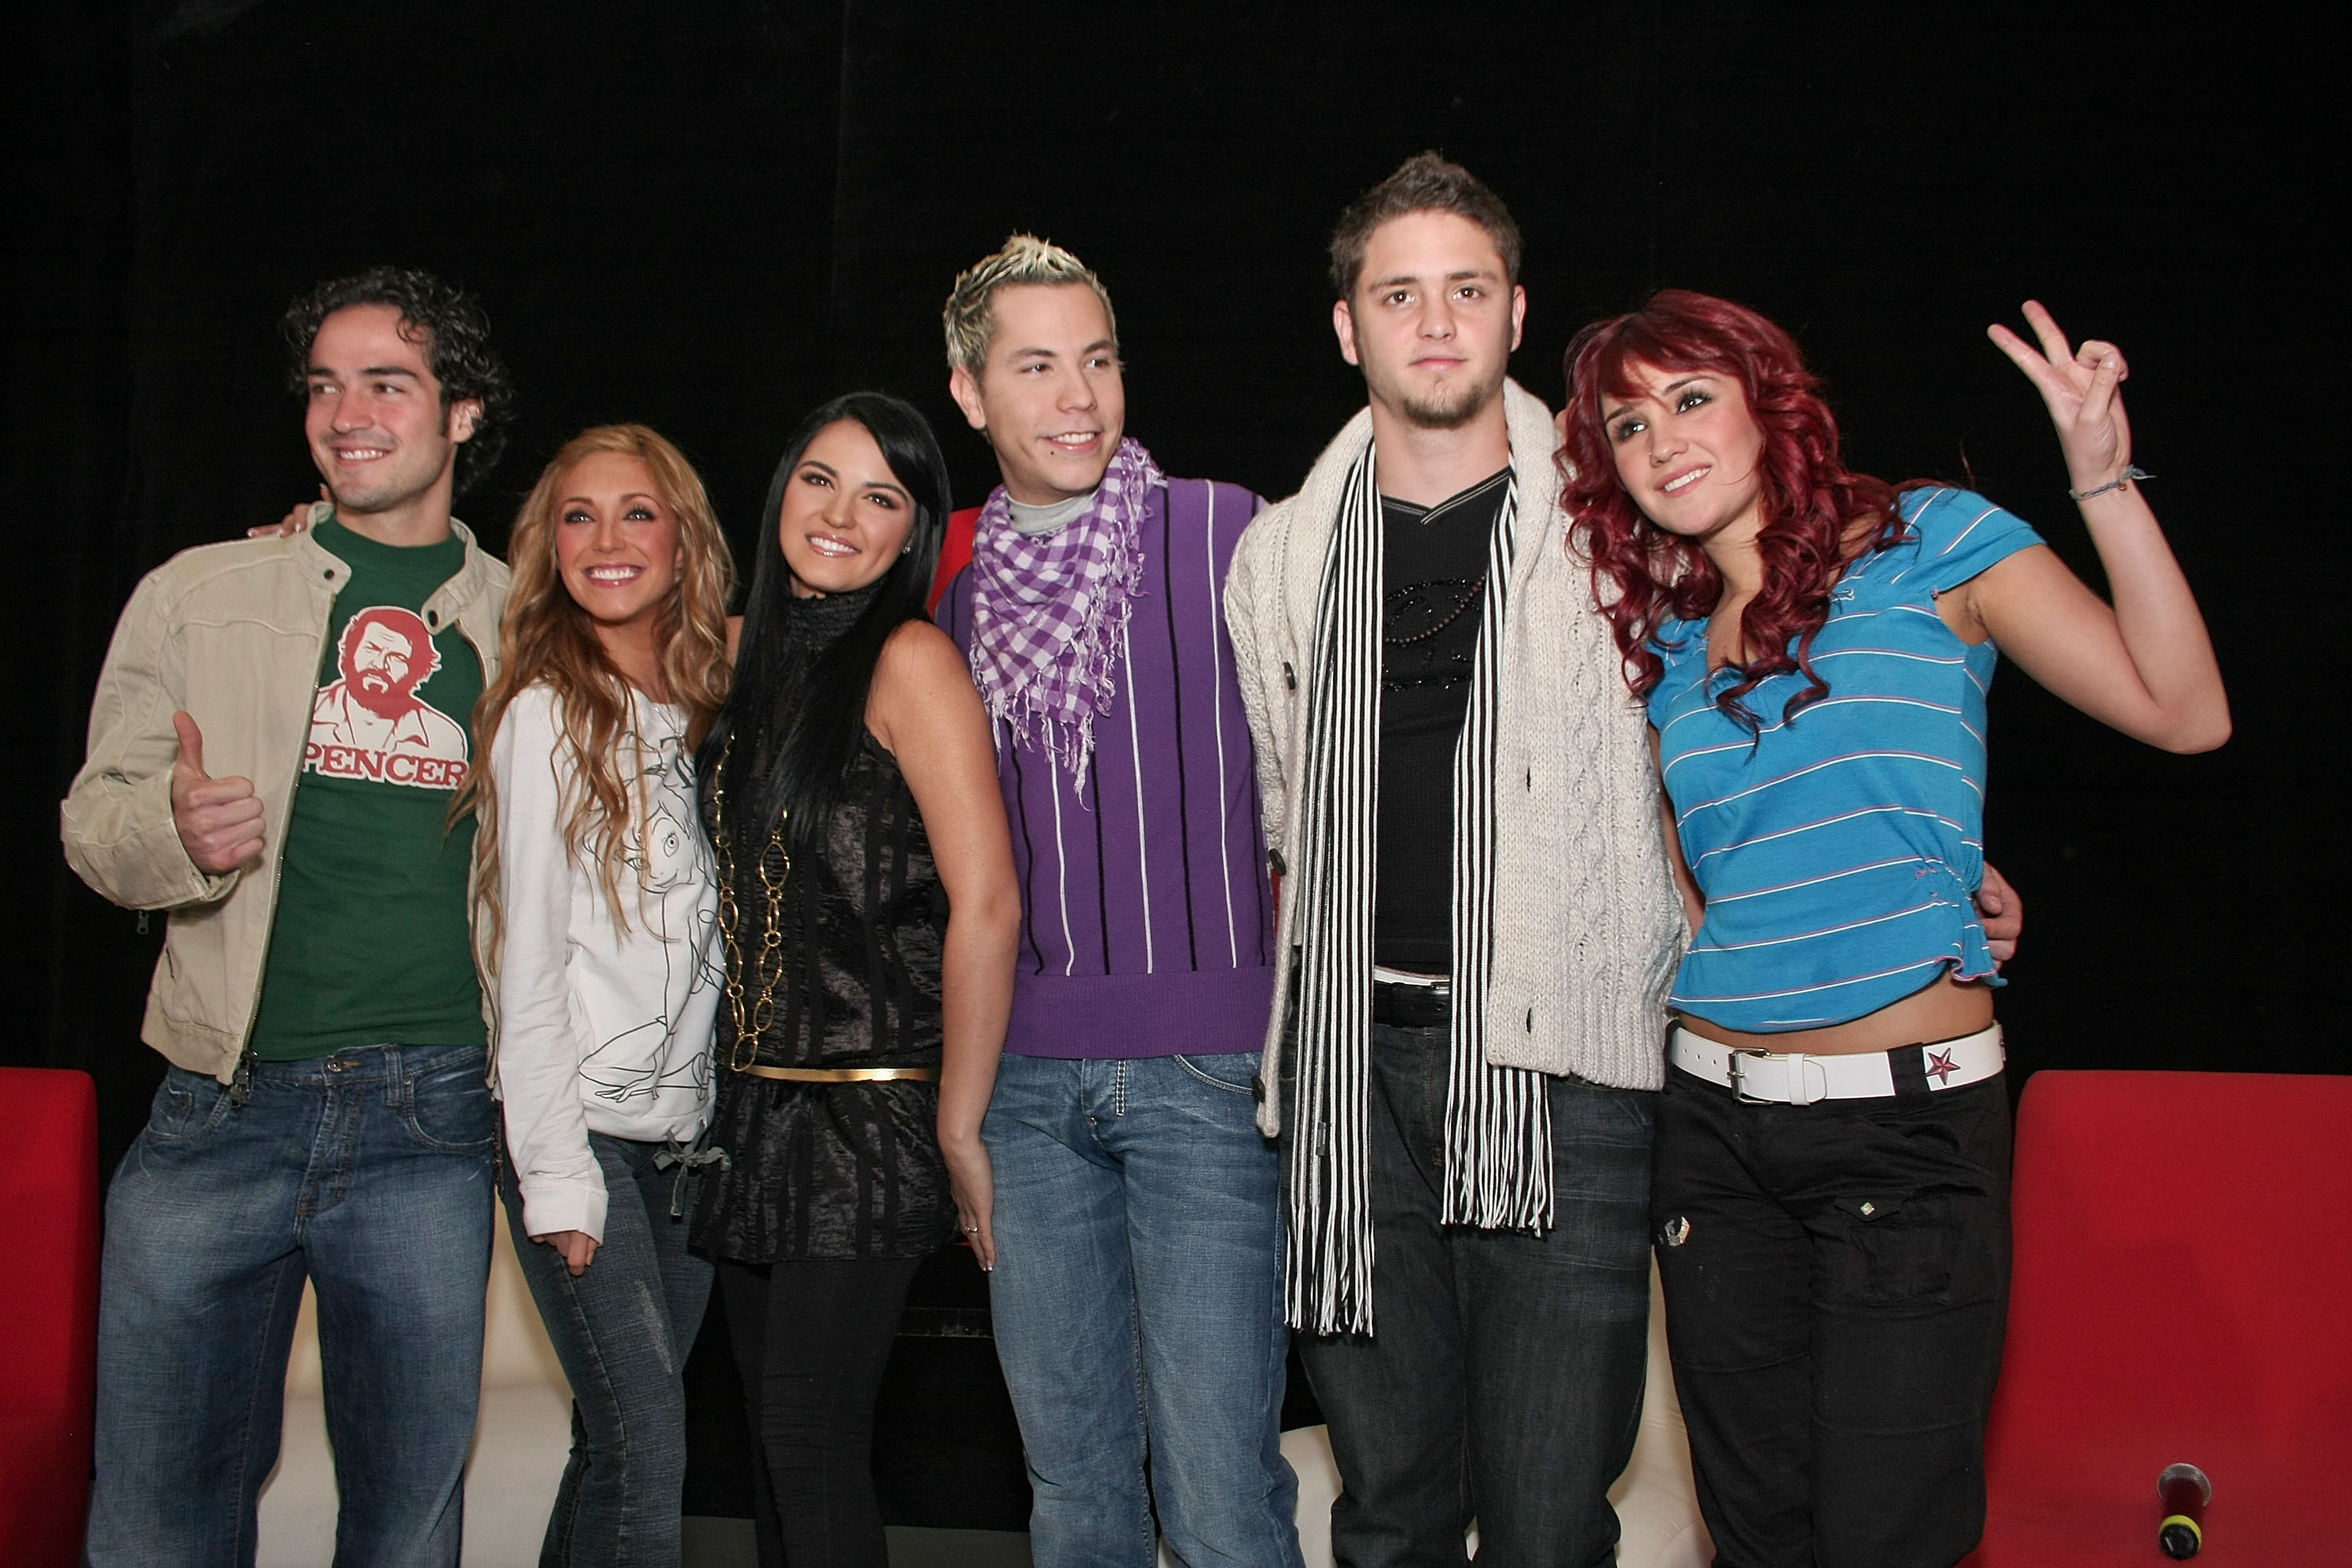 """MEXICO CITY - NOVEMBER 27: Alfonso Herrera,Anahi,Maite Perroni,Christian Chavez,Christopher Uckermann and Dulce Maria of RBD attends a press conference to announce their new album """"Empezar Desde Cero"""" held at EMI Music on November 27, 2007 in Mexico City. (Photo by Victor Chavez/WireImage)"""